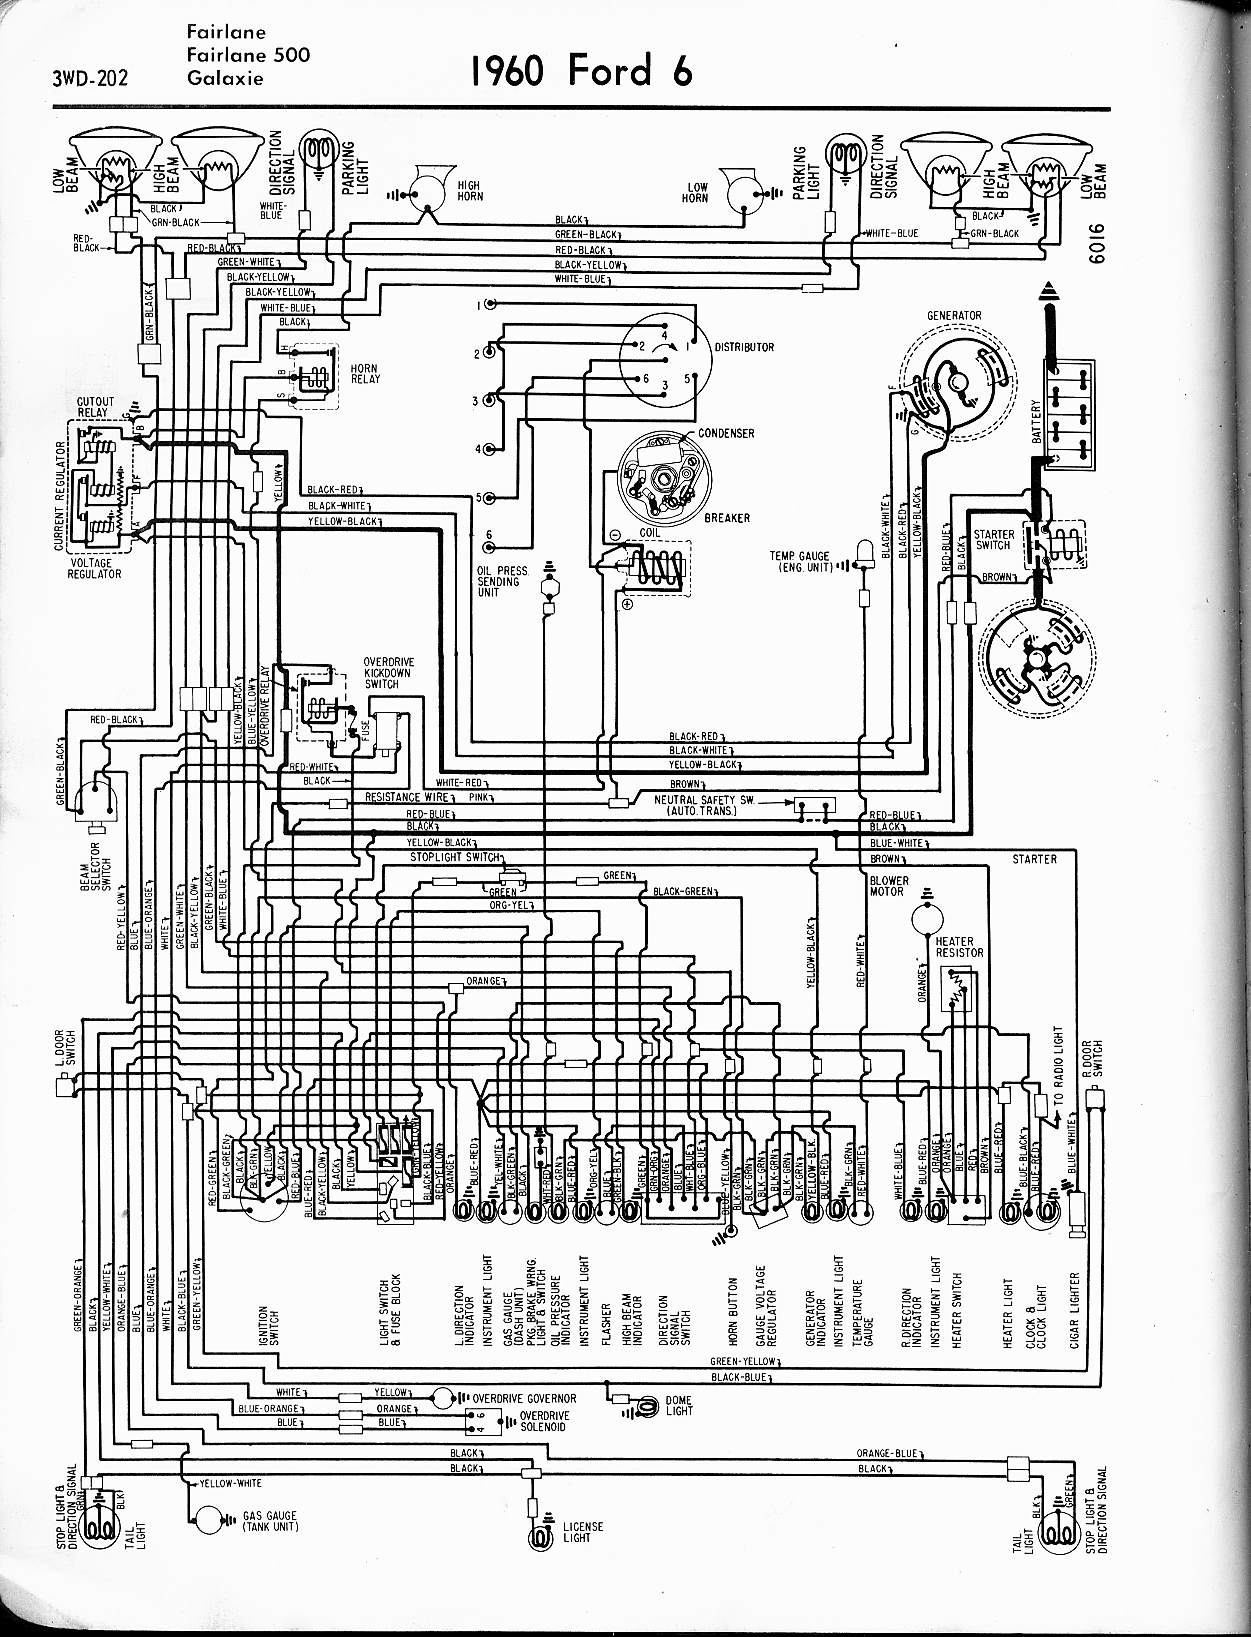 [ZTBE_9966]  9C578D 1966 Ford F100 Engine Manual | Wiring Library | 1966 Ford Truck Fuse Box |  | Wiring Library